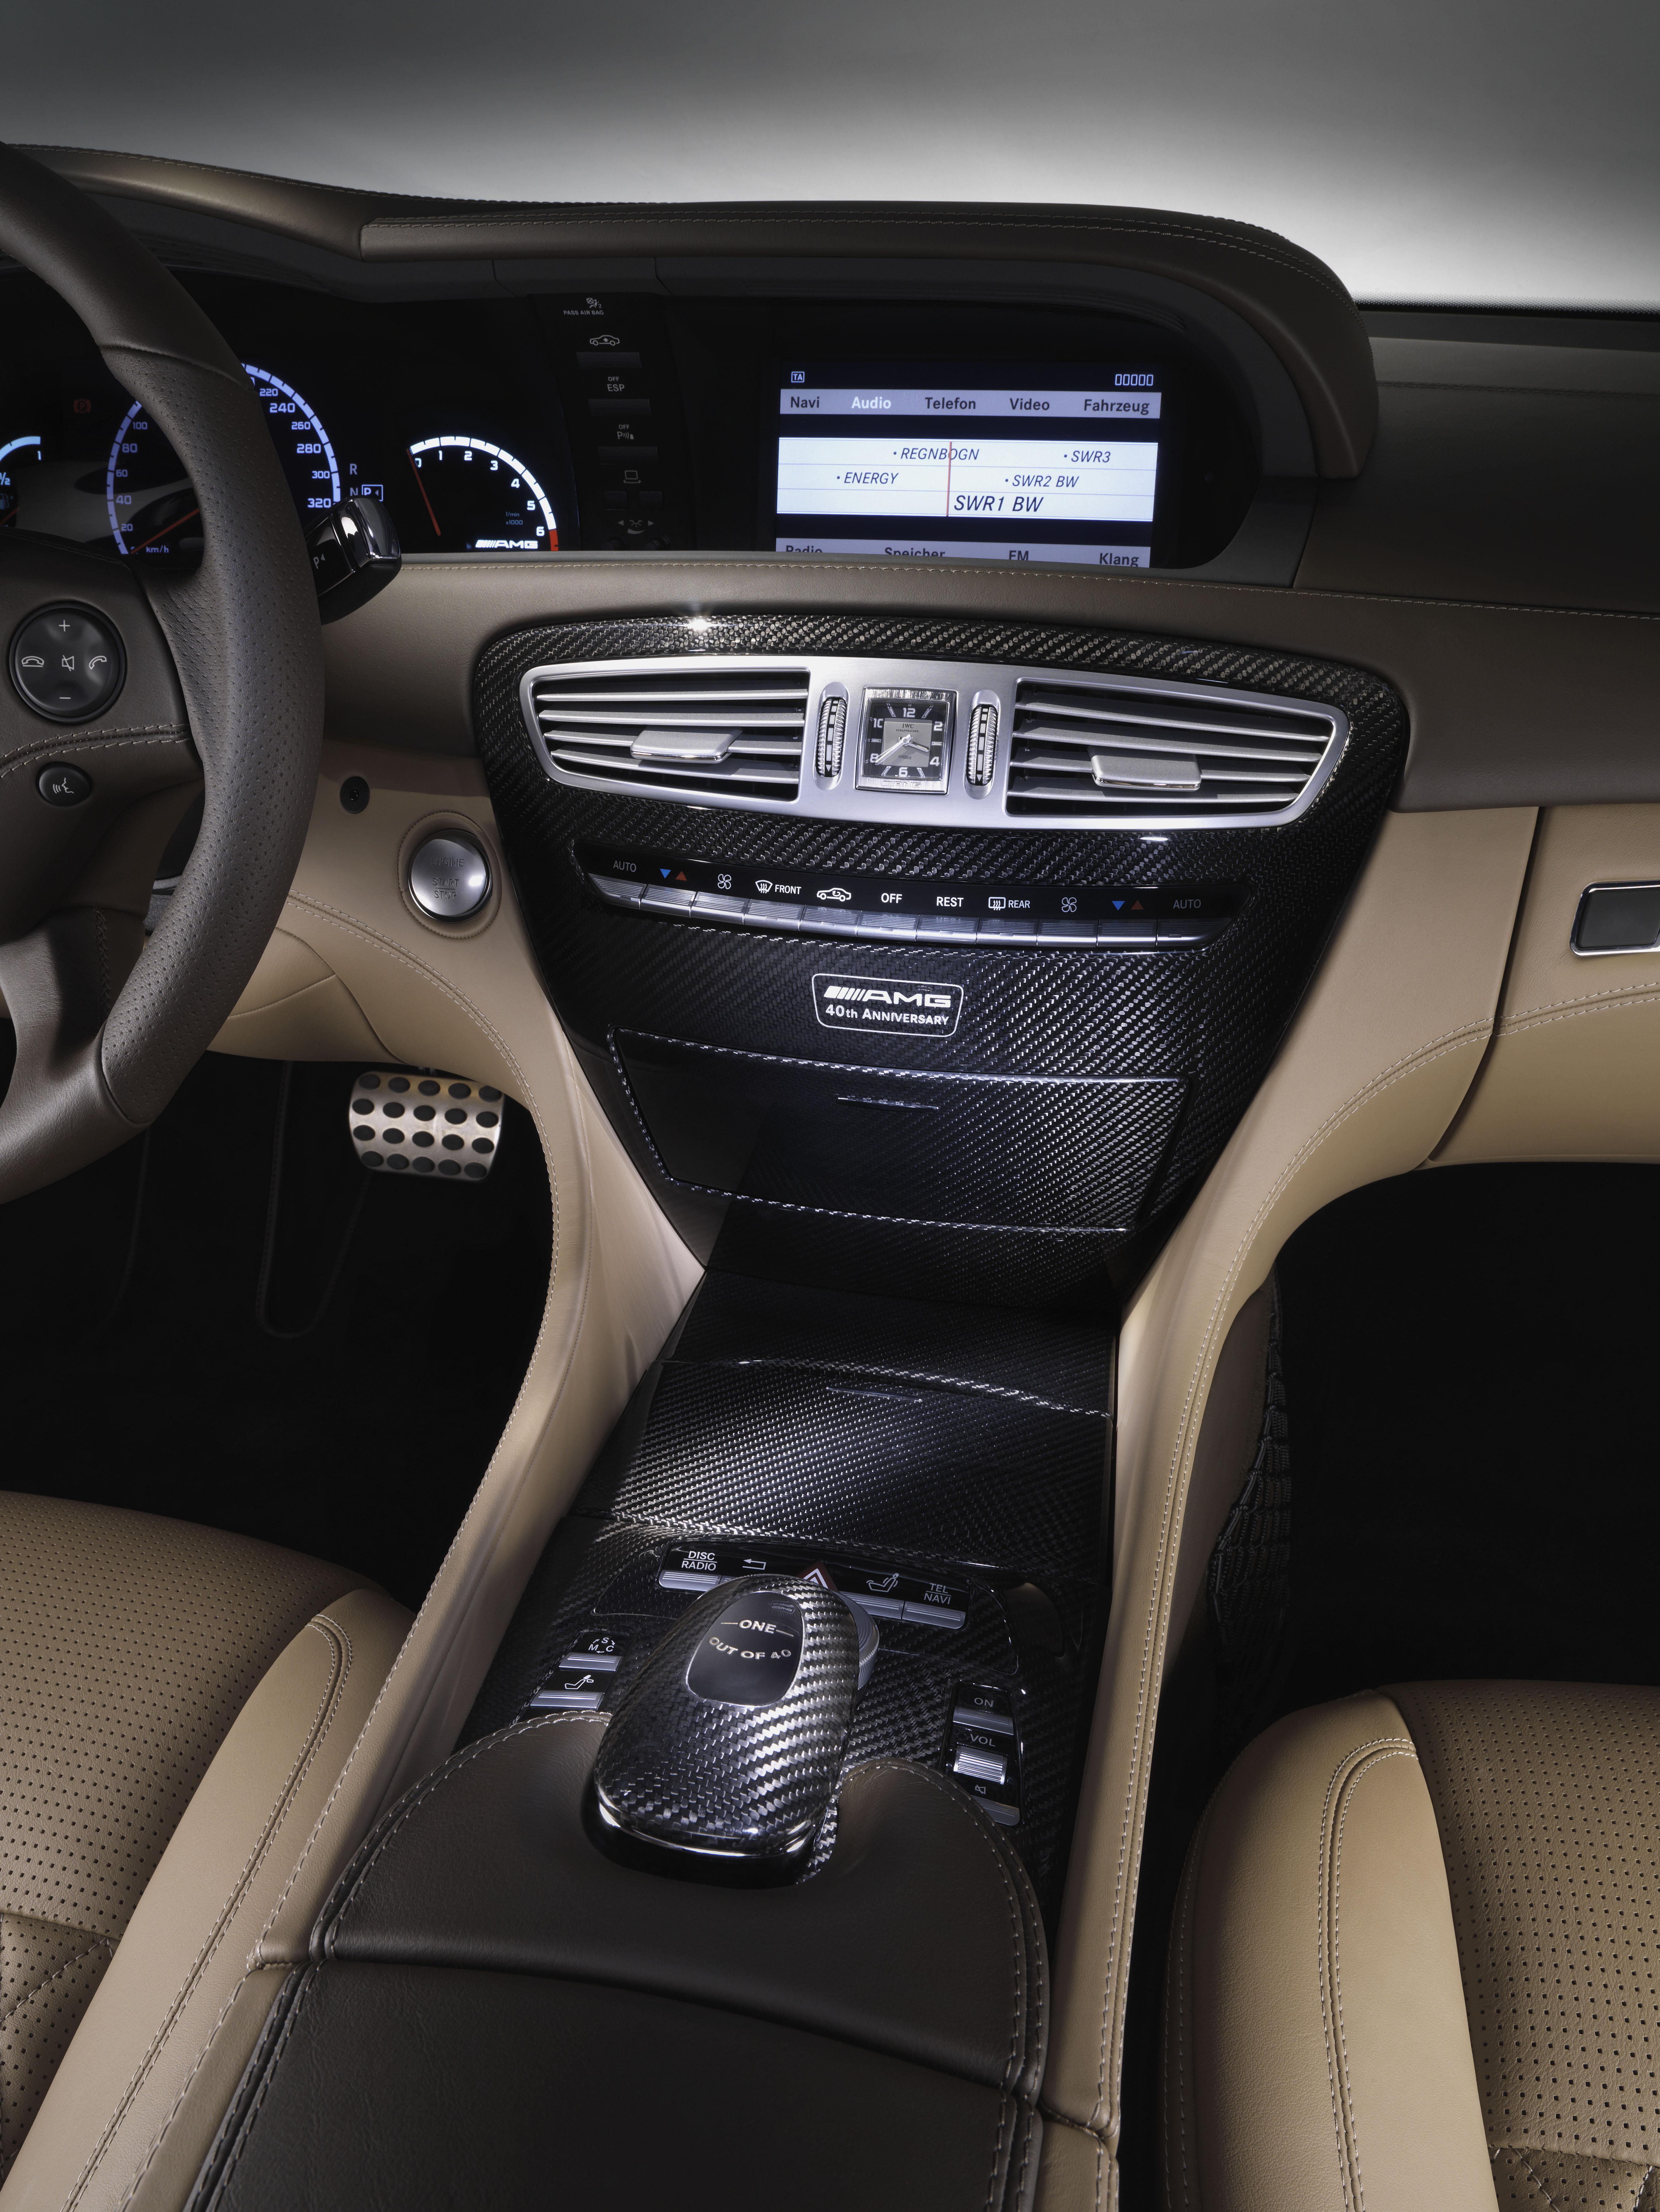 2008 Mercedes CL 65 AMG Gallery 159194 | Top Speed  |2008 Mercedes Cl65 Amg 40th Anniversary